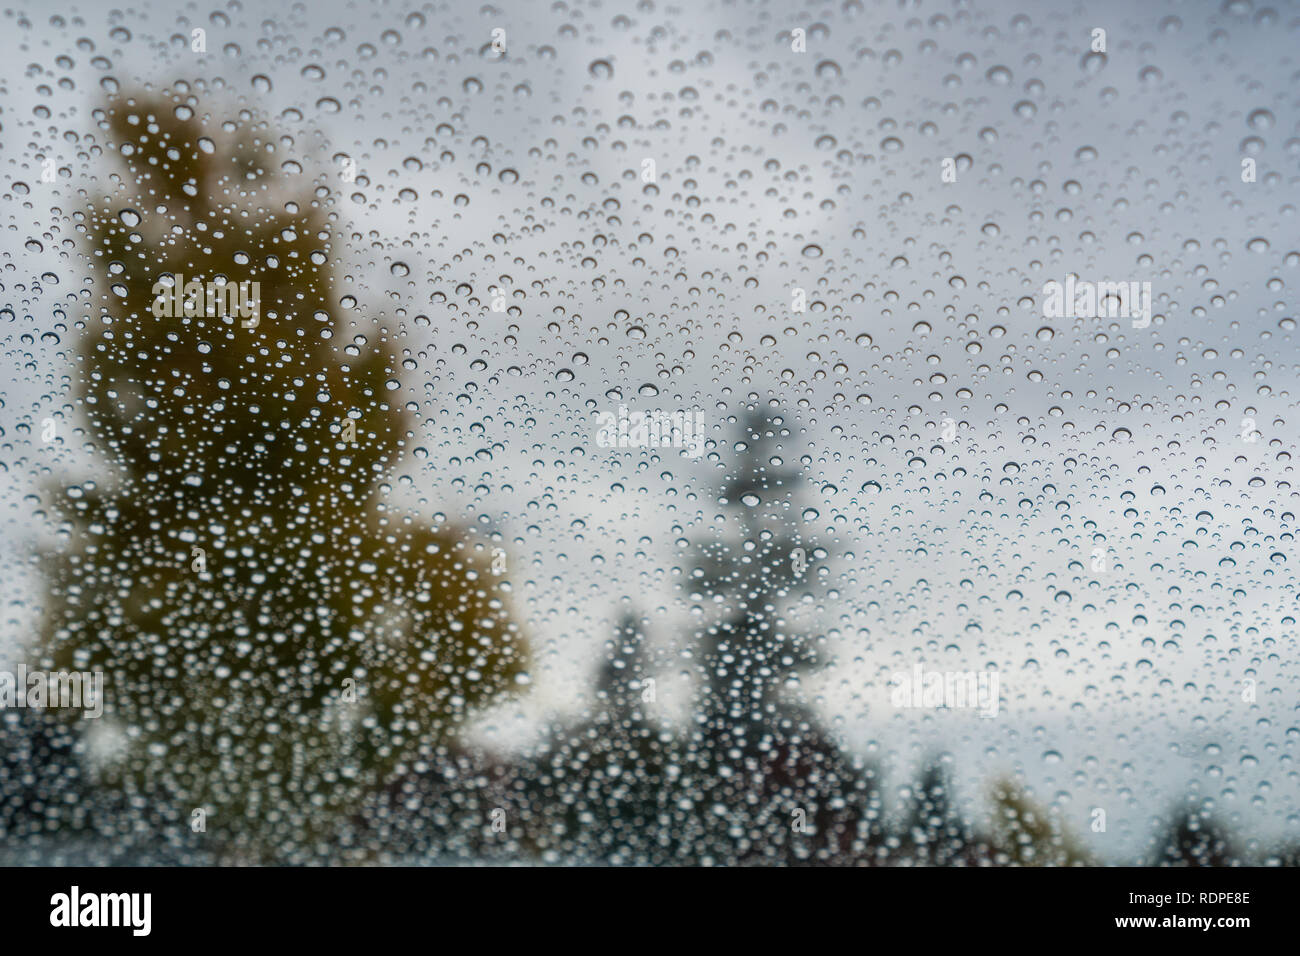 Drops of rain on the windshield; cloudy sky and autumn colored trees in the background - Stock Image